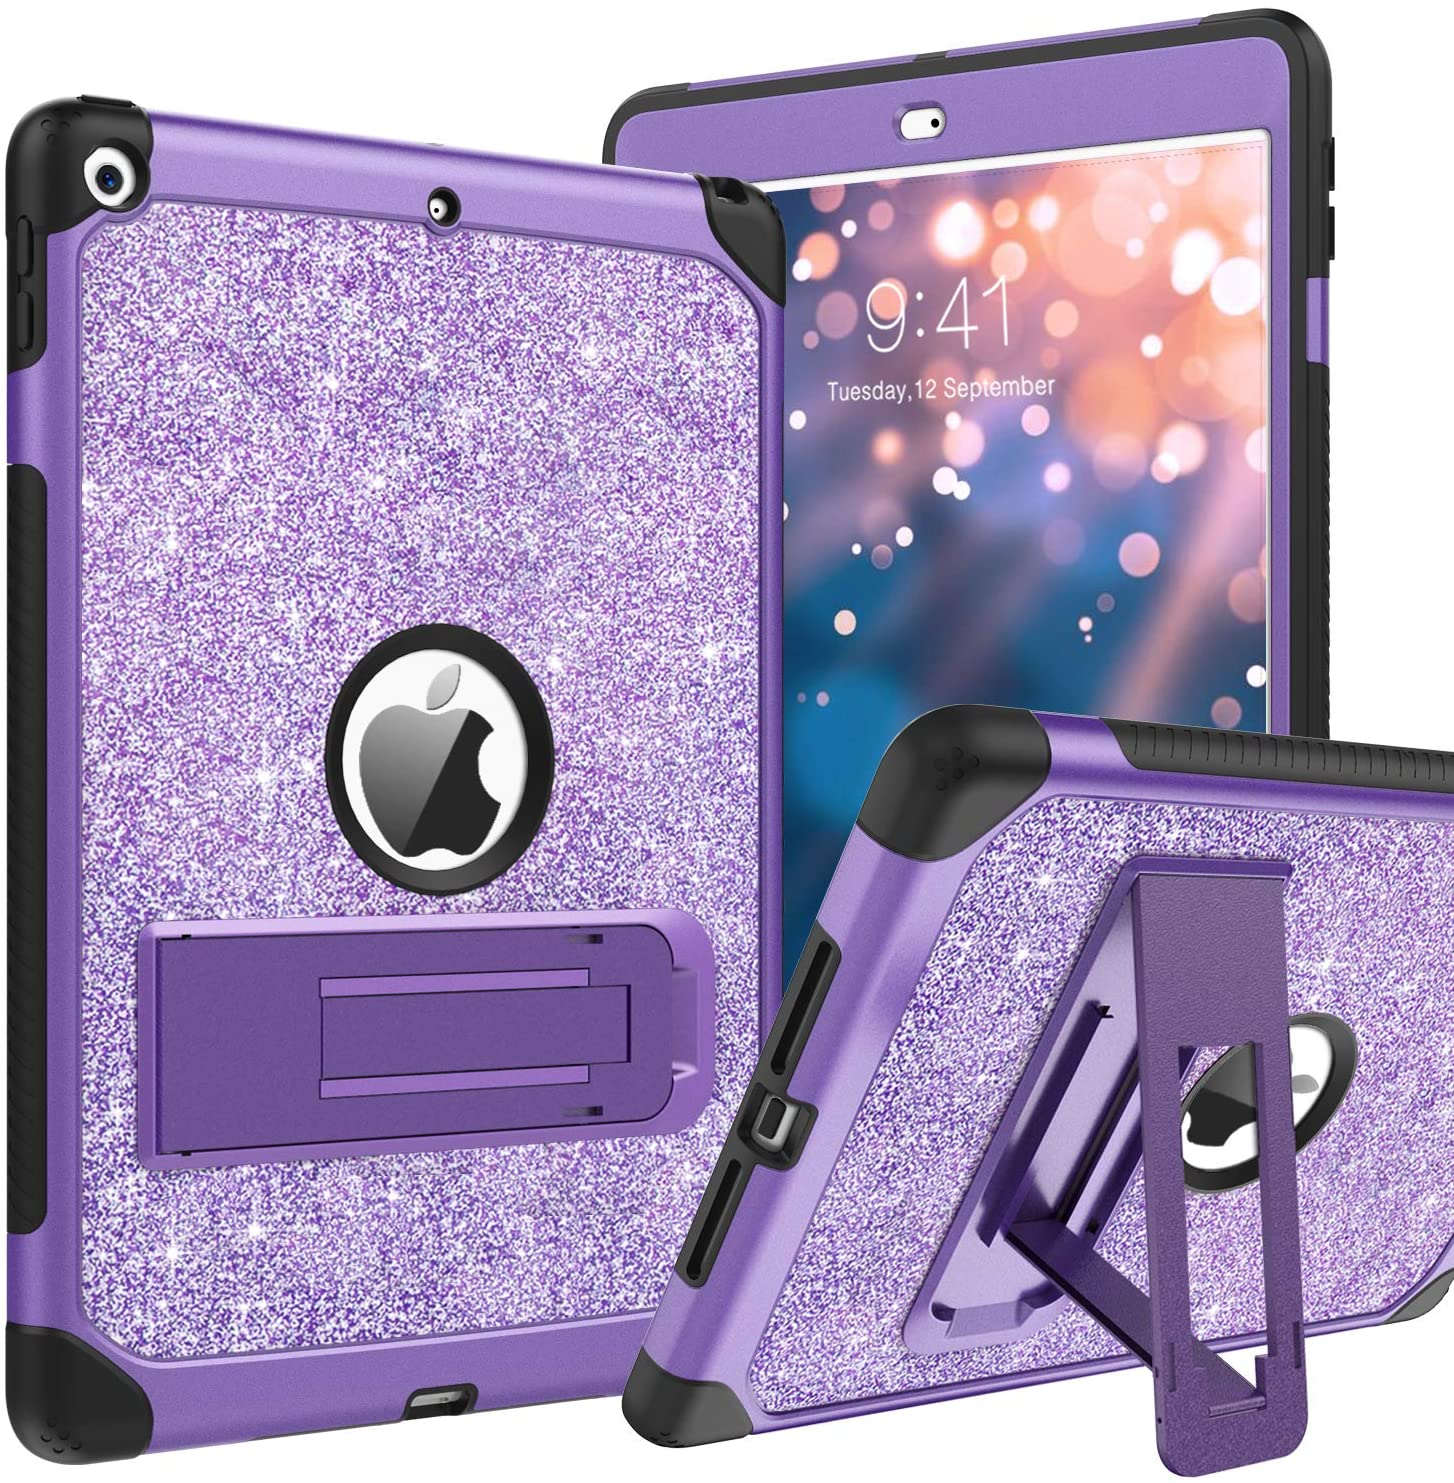 BENTOBEN iPad 8th Generation Case, iPad 7th Generation Case, iPad 10.2 2020 / 2019 Case, Glitter Sparkly 3 Layers Shockproof Kickstand Protective Tablet Cover for iPad 10.2 Inch 2020 / 2019, Purple